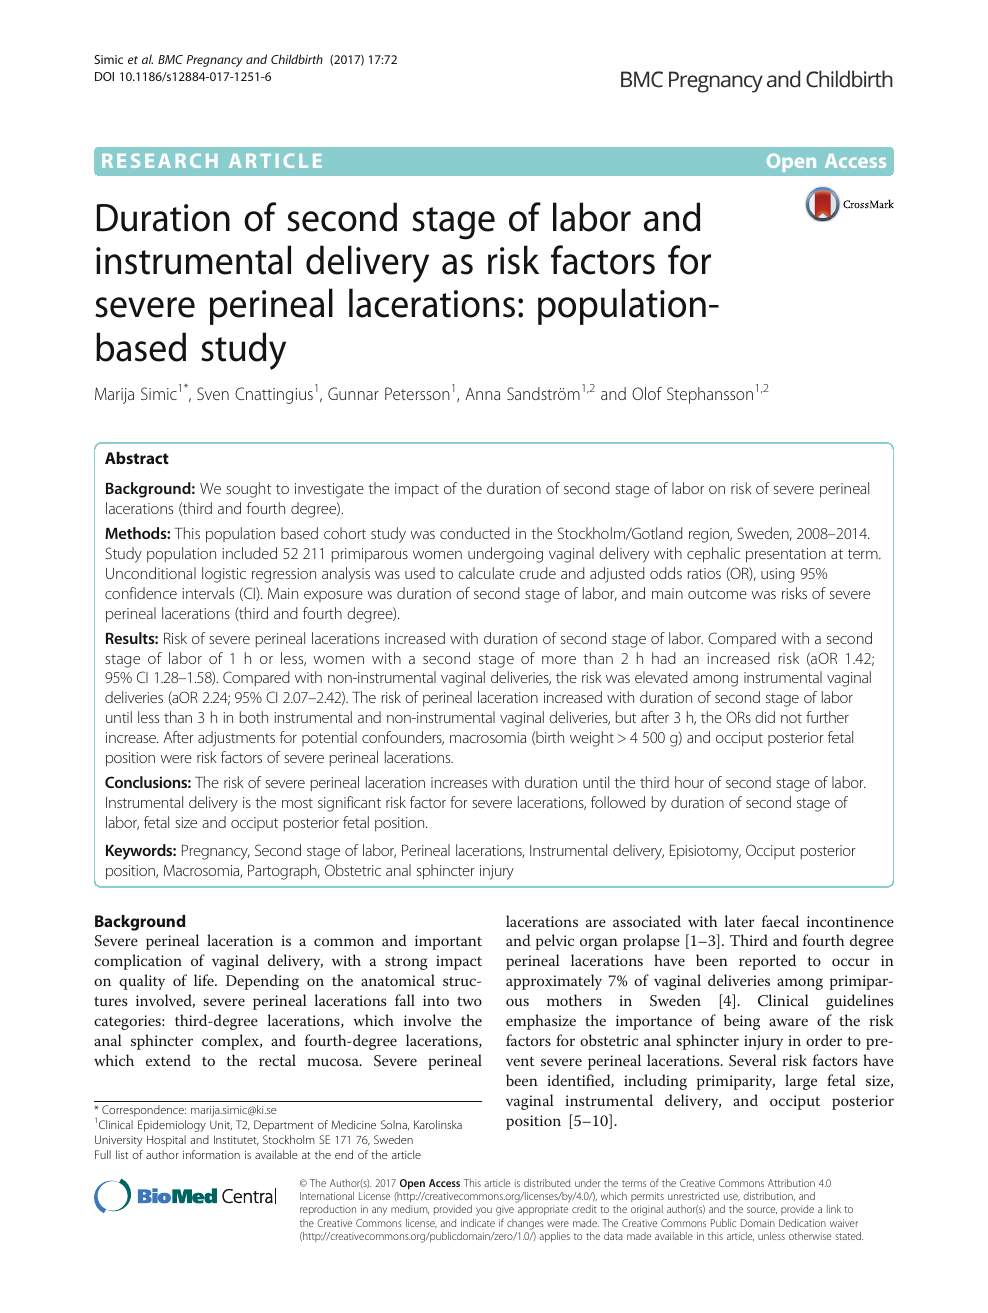 Duration of second stage of labor and instrumental delivery